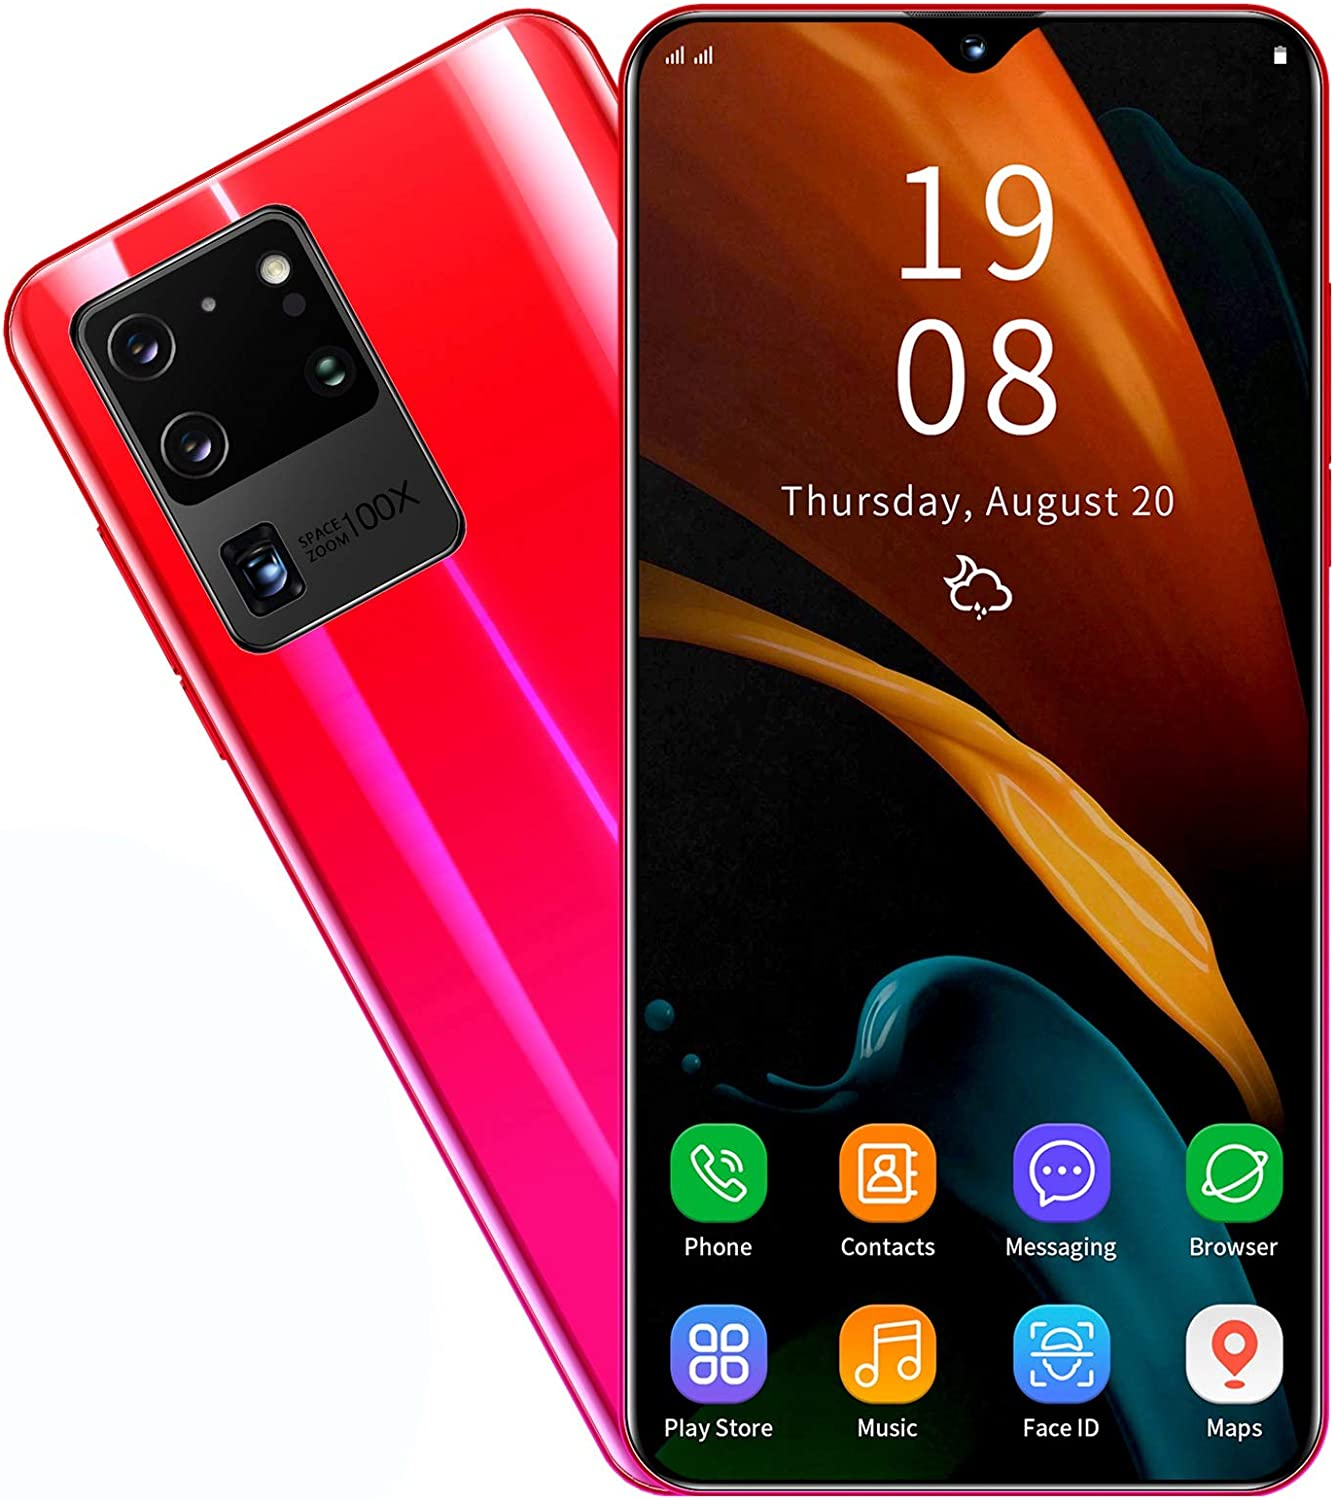 Max 40% OFF Dilwe1 S20U Unlocked Android Smartphone Face Screen New life 6.26in ID U